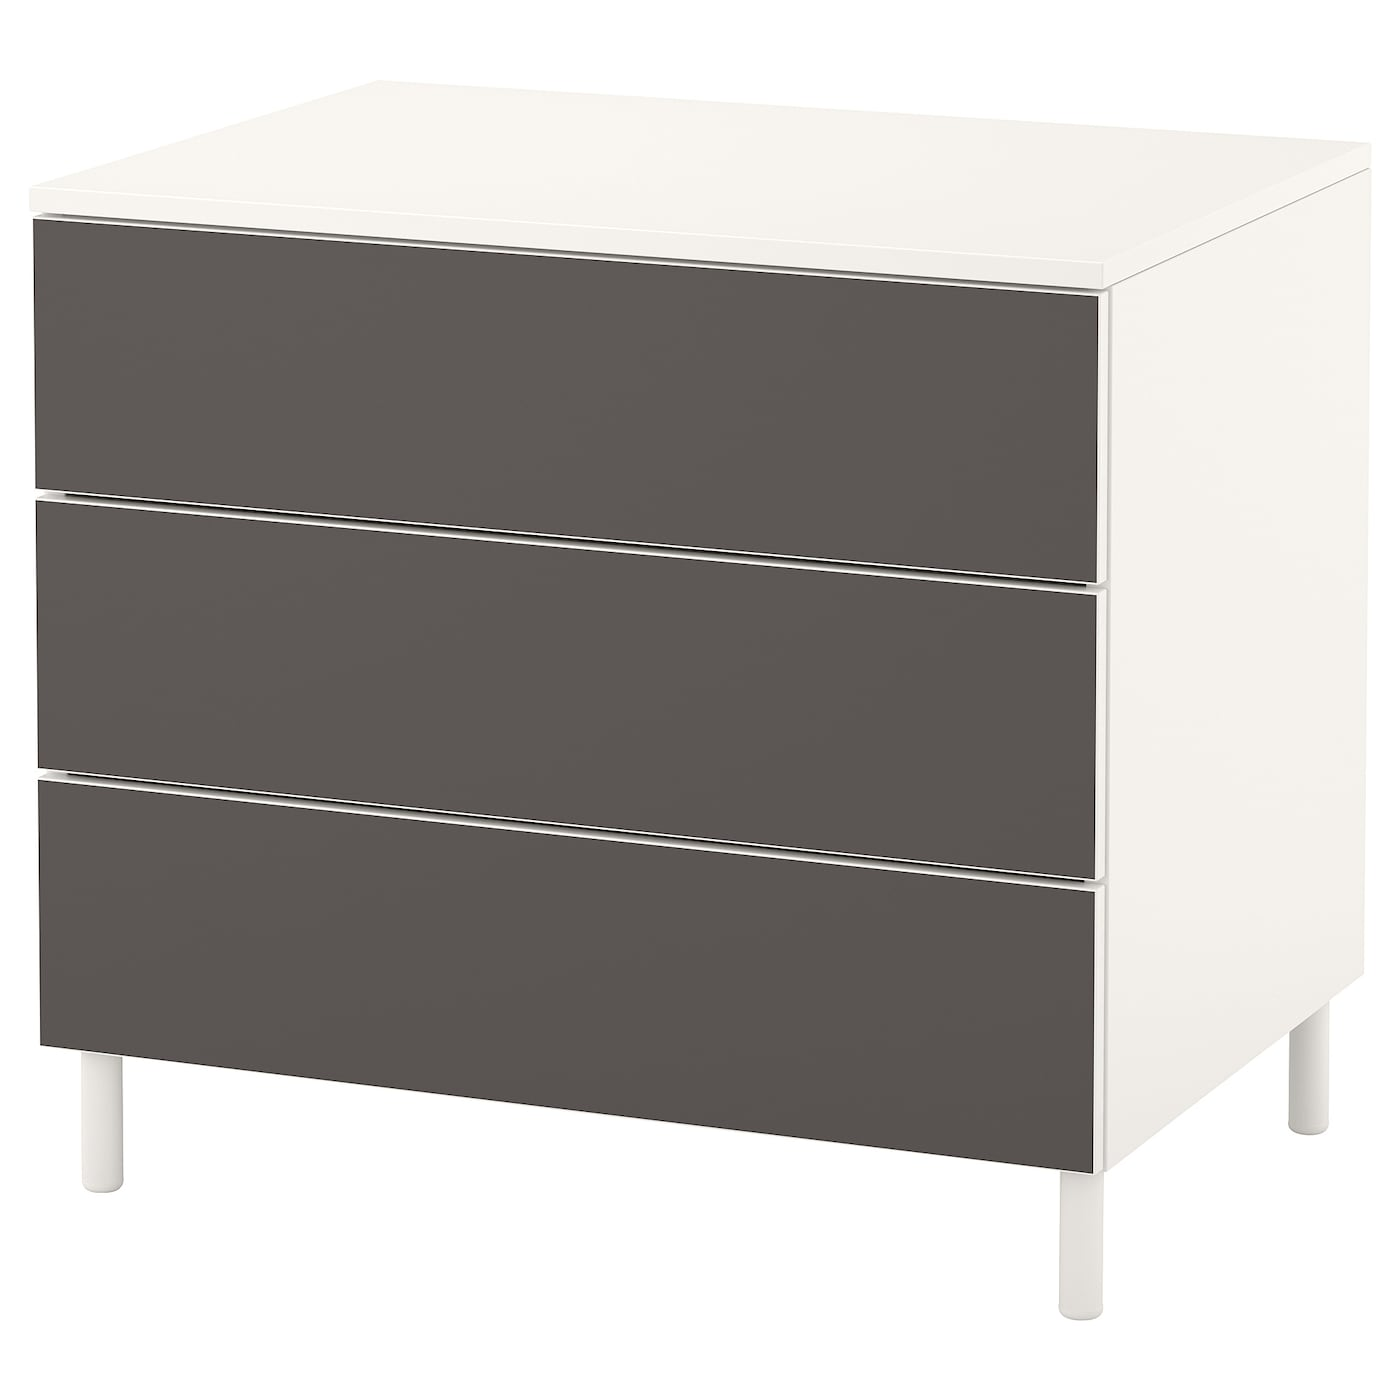 IKEA PLATSA chest of 3 drawers Smooth running drawers with pull-out stop.